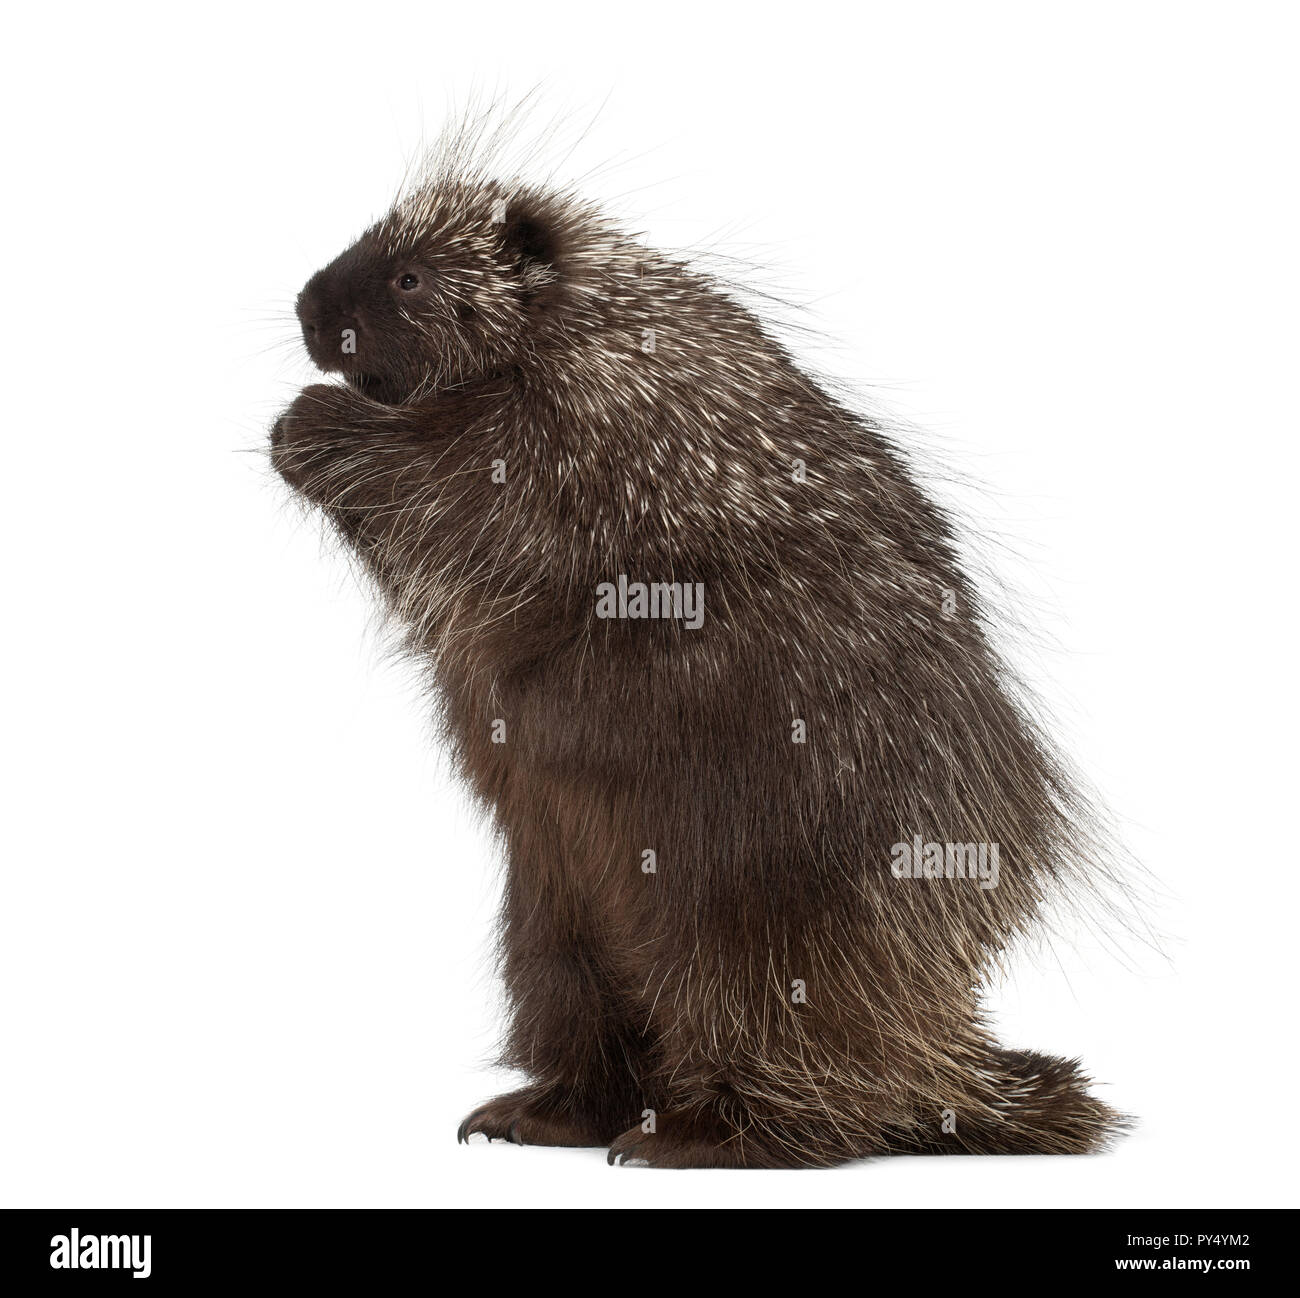 North American Porcupine standing on hind legs, Erethizon dorsatum, also known as Canadian Porcupine or Common Porcupine against white background Stock Photo